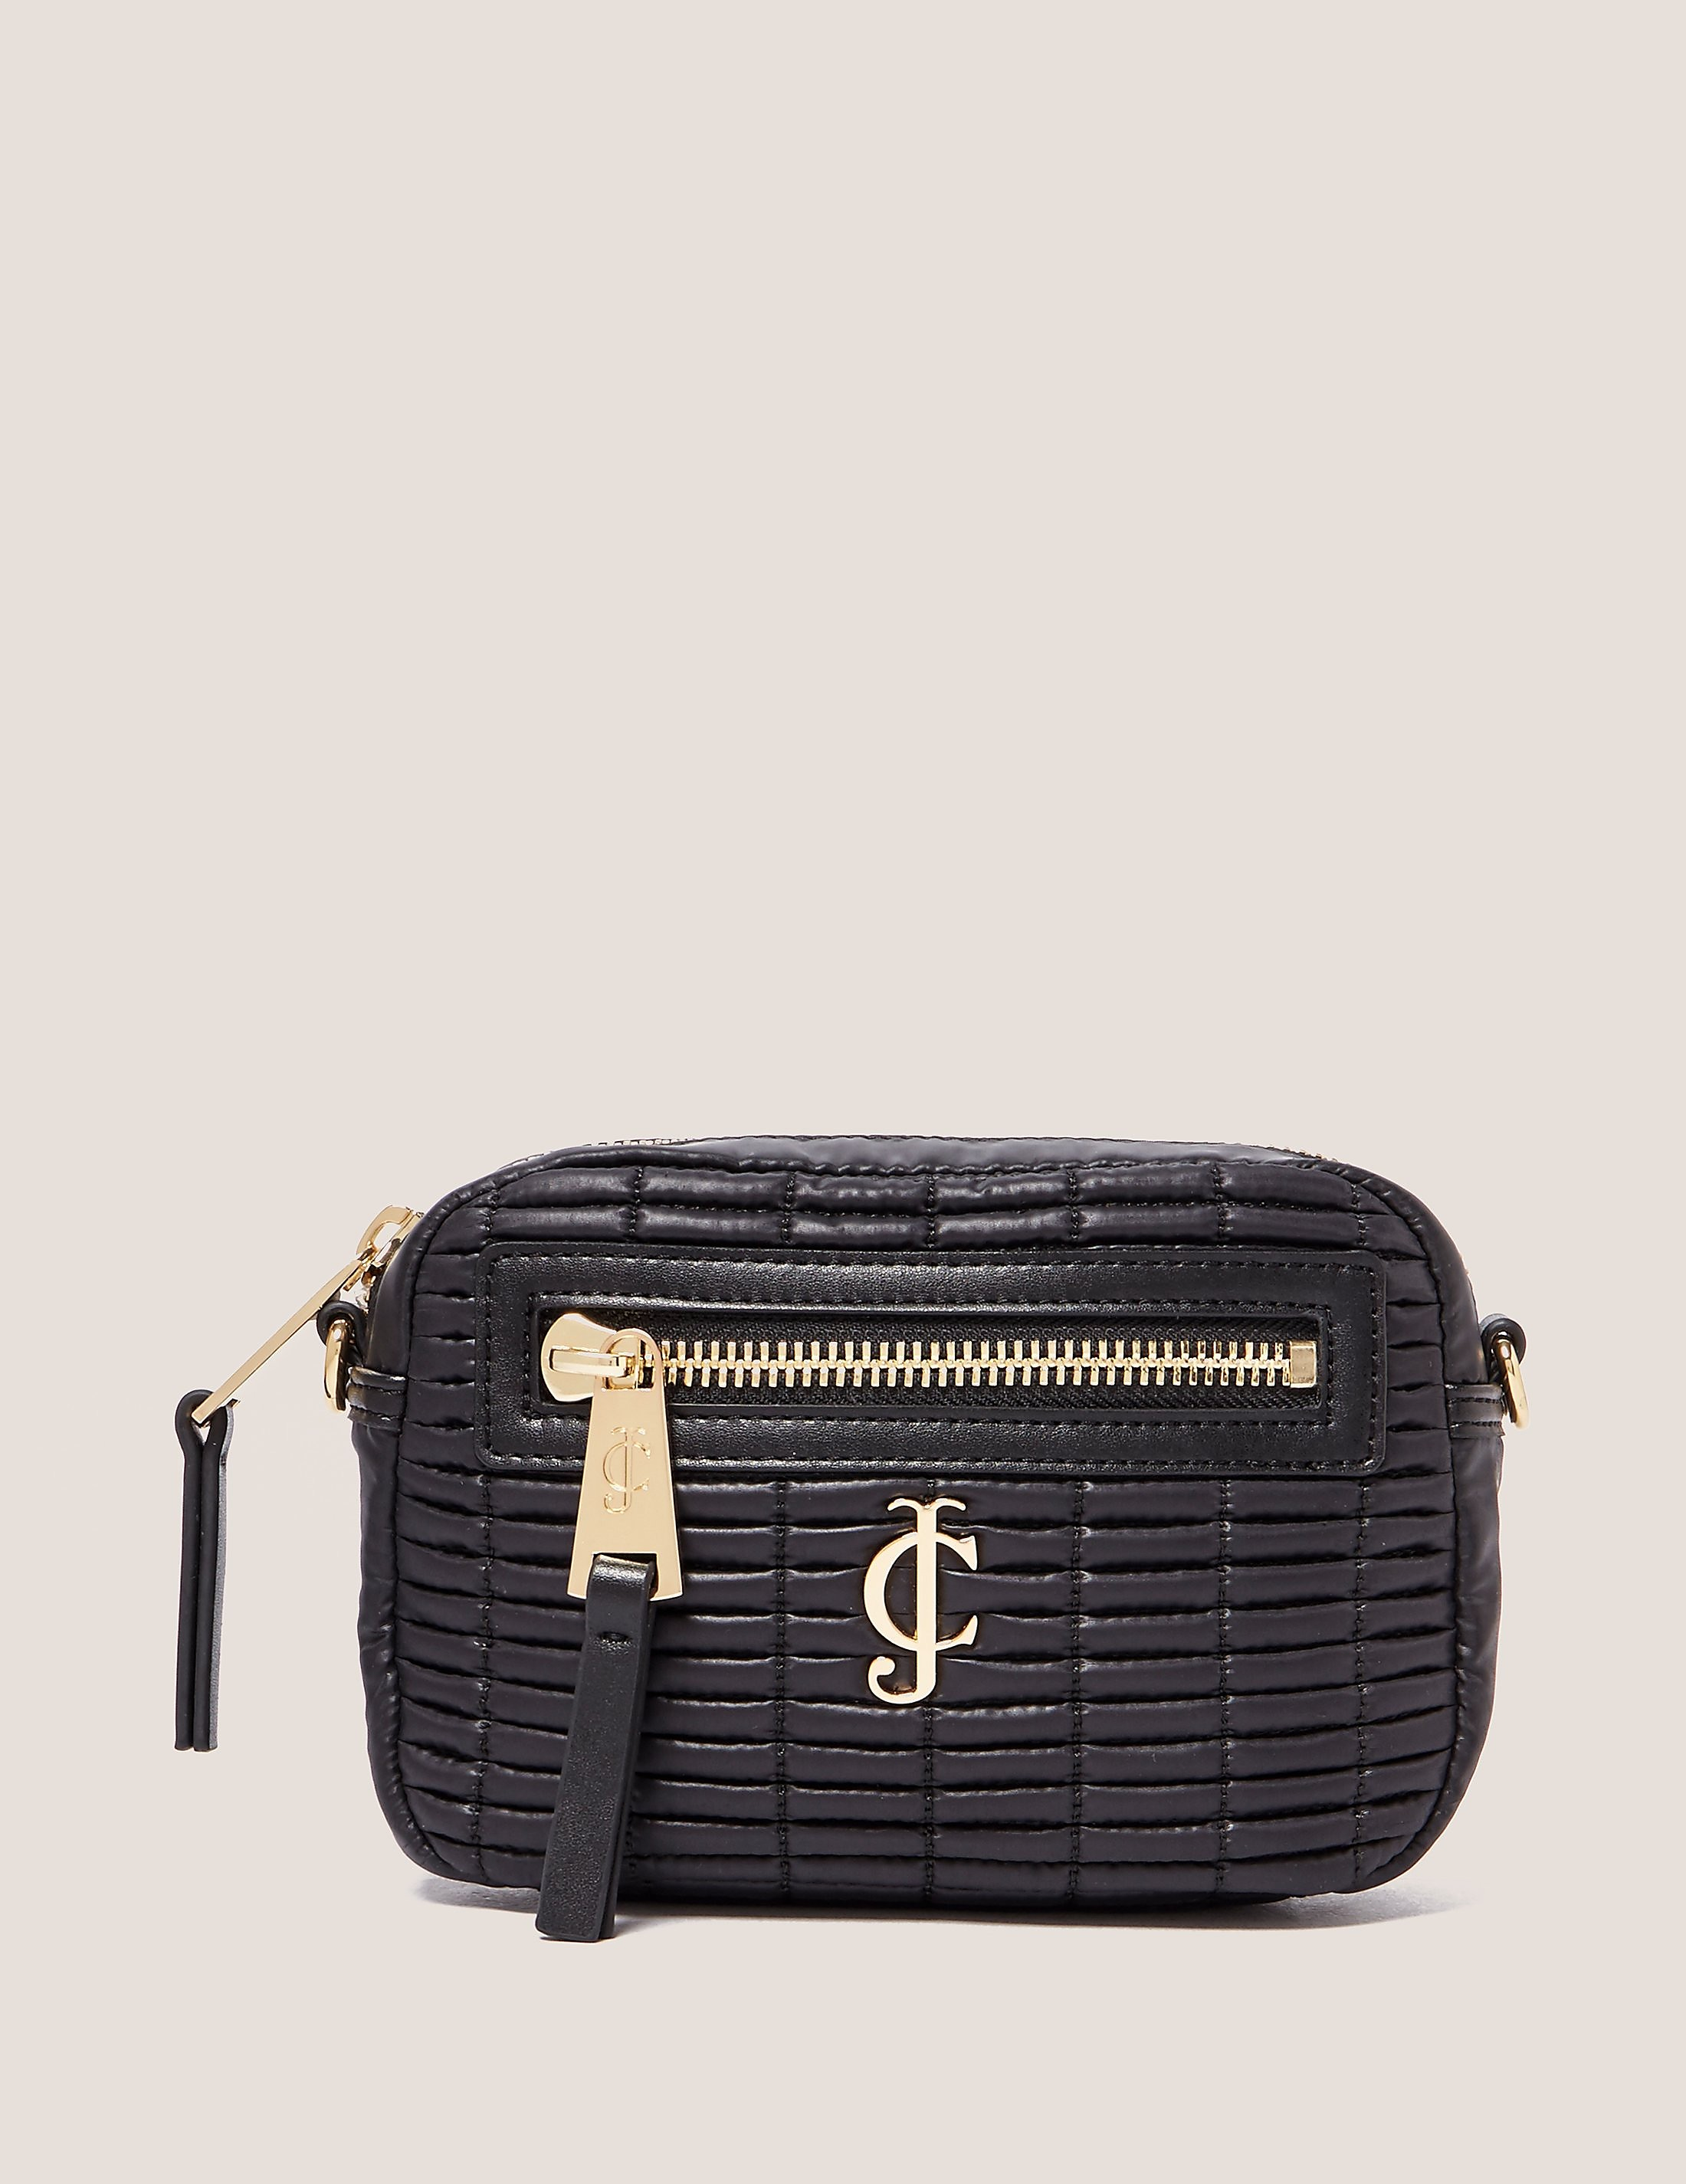 Juicy Couture Westlake CrossBody